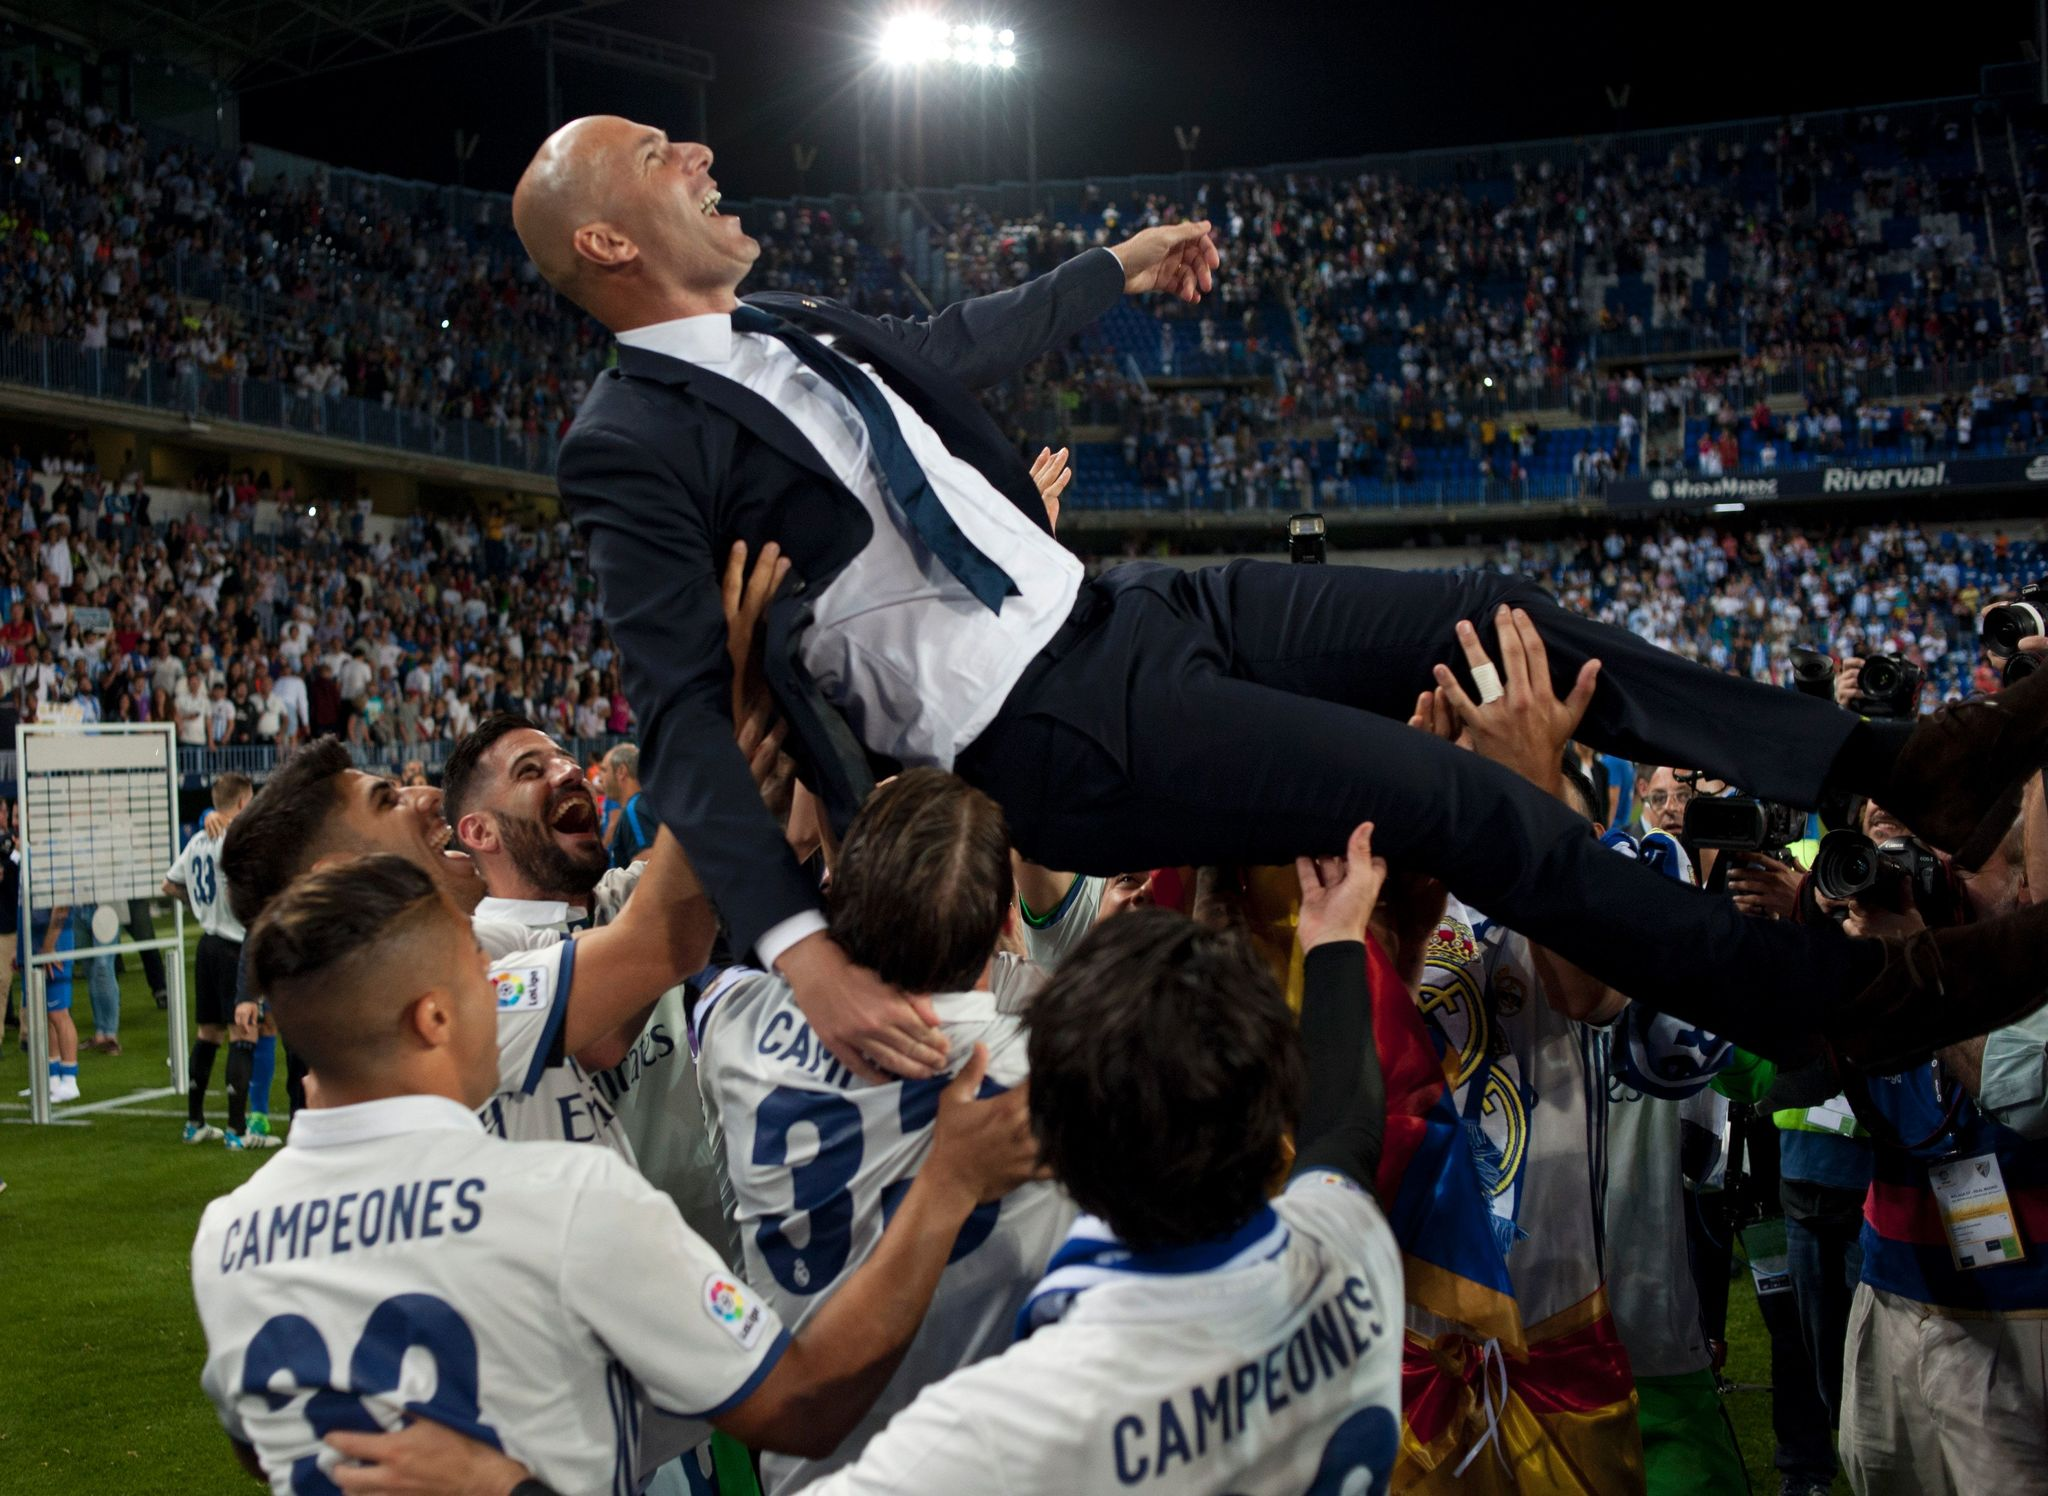 Real Madrids French head coach Zinedine <HIT>Zidane</HIT> is tossed by players at the end of the Spanish league football match <HIT>Malaga</HIT> CF vs Real Madrid at La Rosaleda stadium in <HIT>Malaga</HIT> on May 21, <HIT>2017</HIT>. Real Madrid won their 33rd La Liga title and first for five years as Cristiano Ronaldos 40th goal of the season helped seal a 2-0 win at <HIT>Malaga</HIT> today. / AFP PHOTO / SERGIO CAMACHO